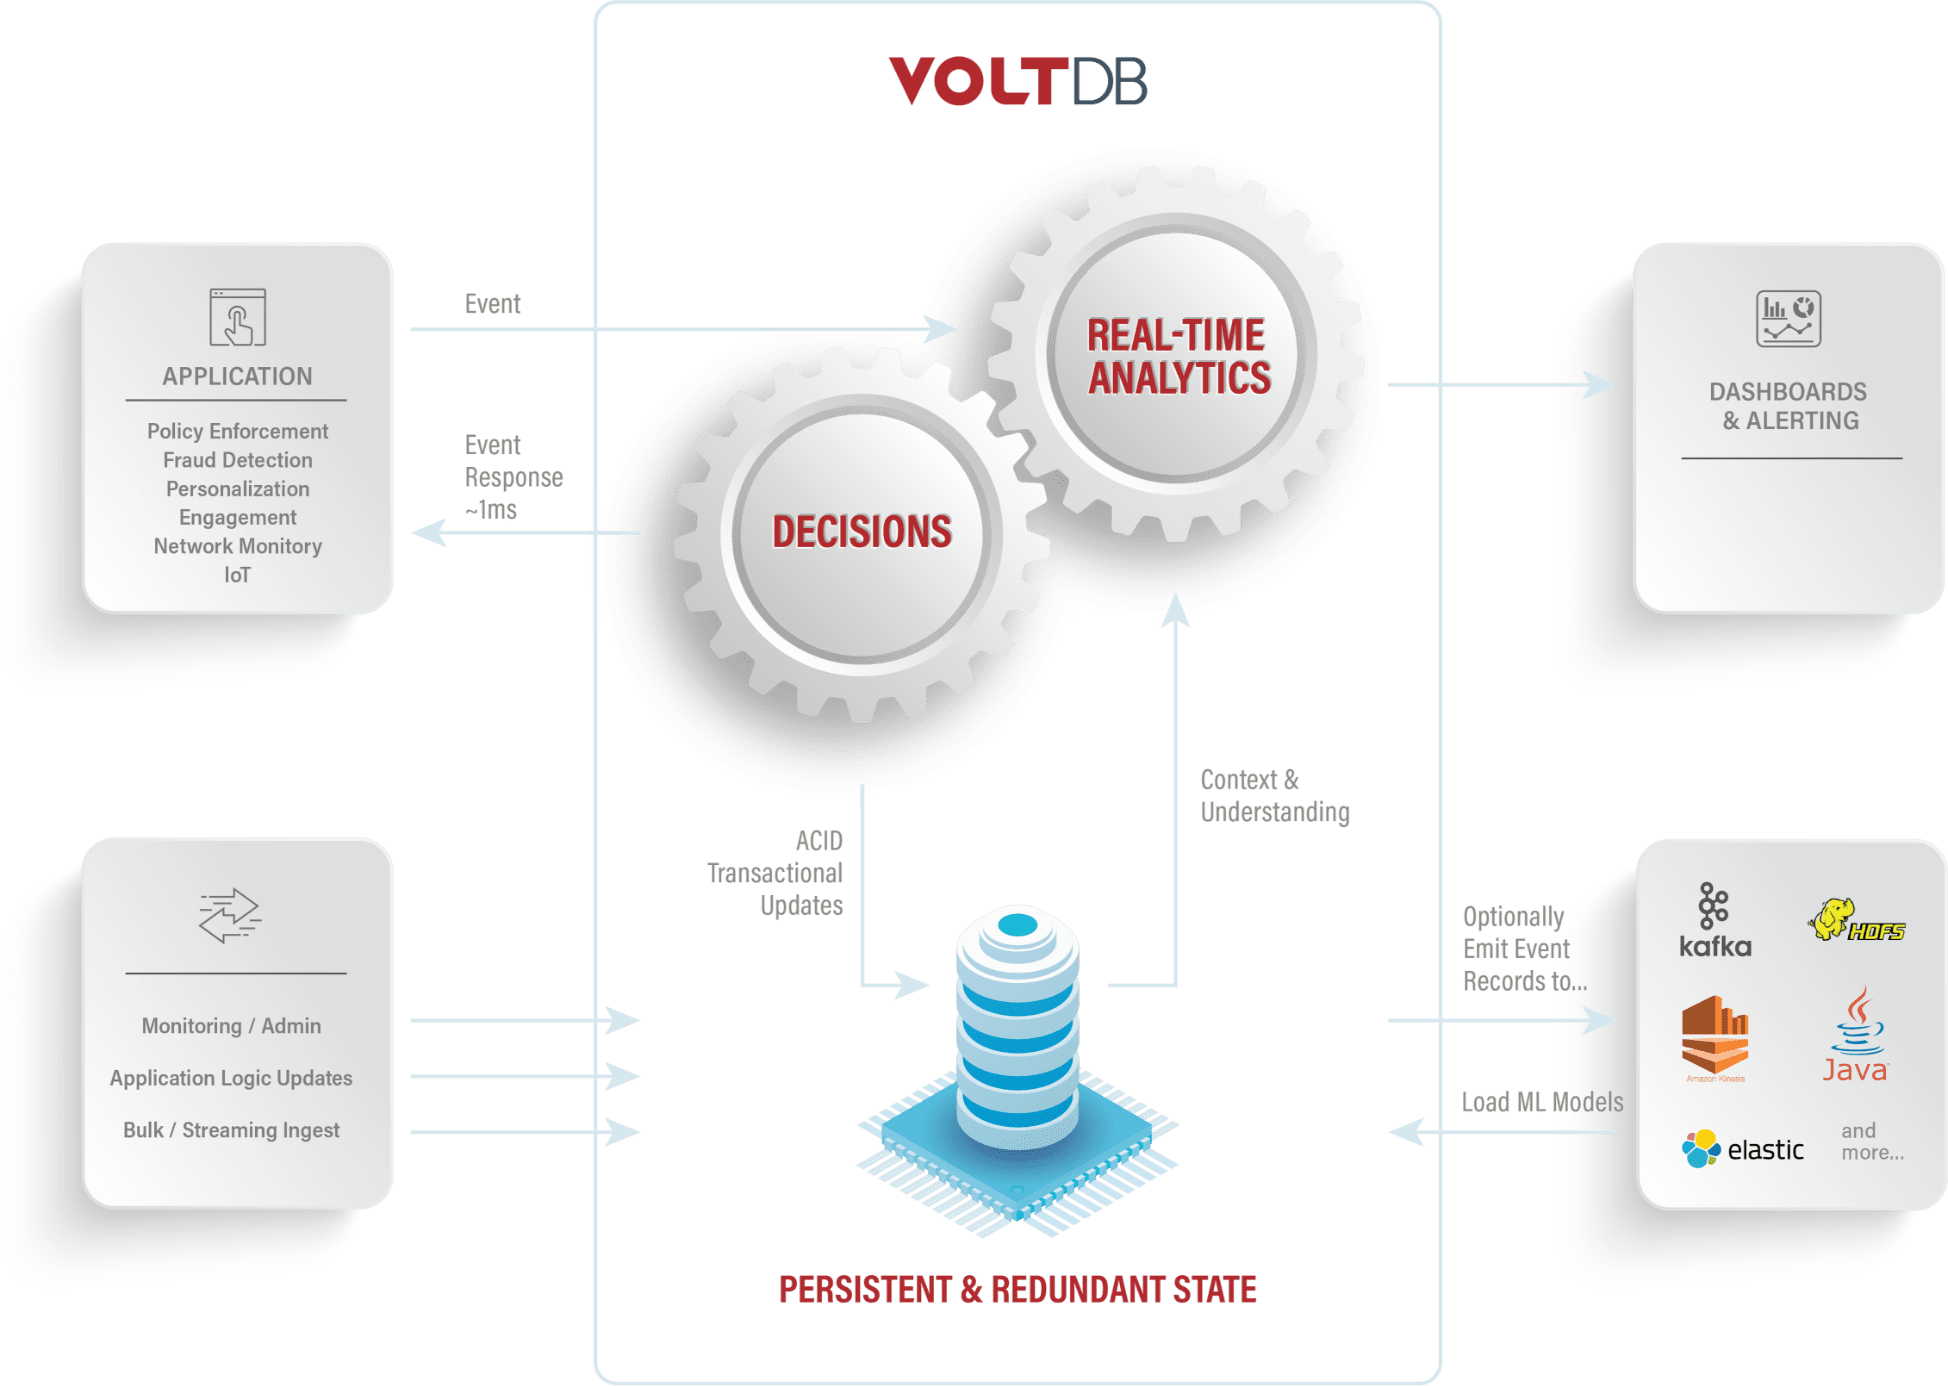 VoltDB Architecture Diagram 2020